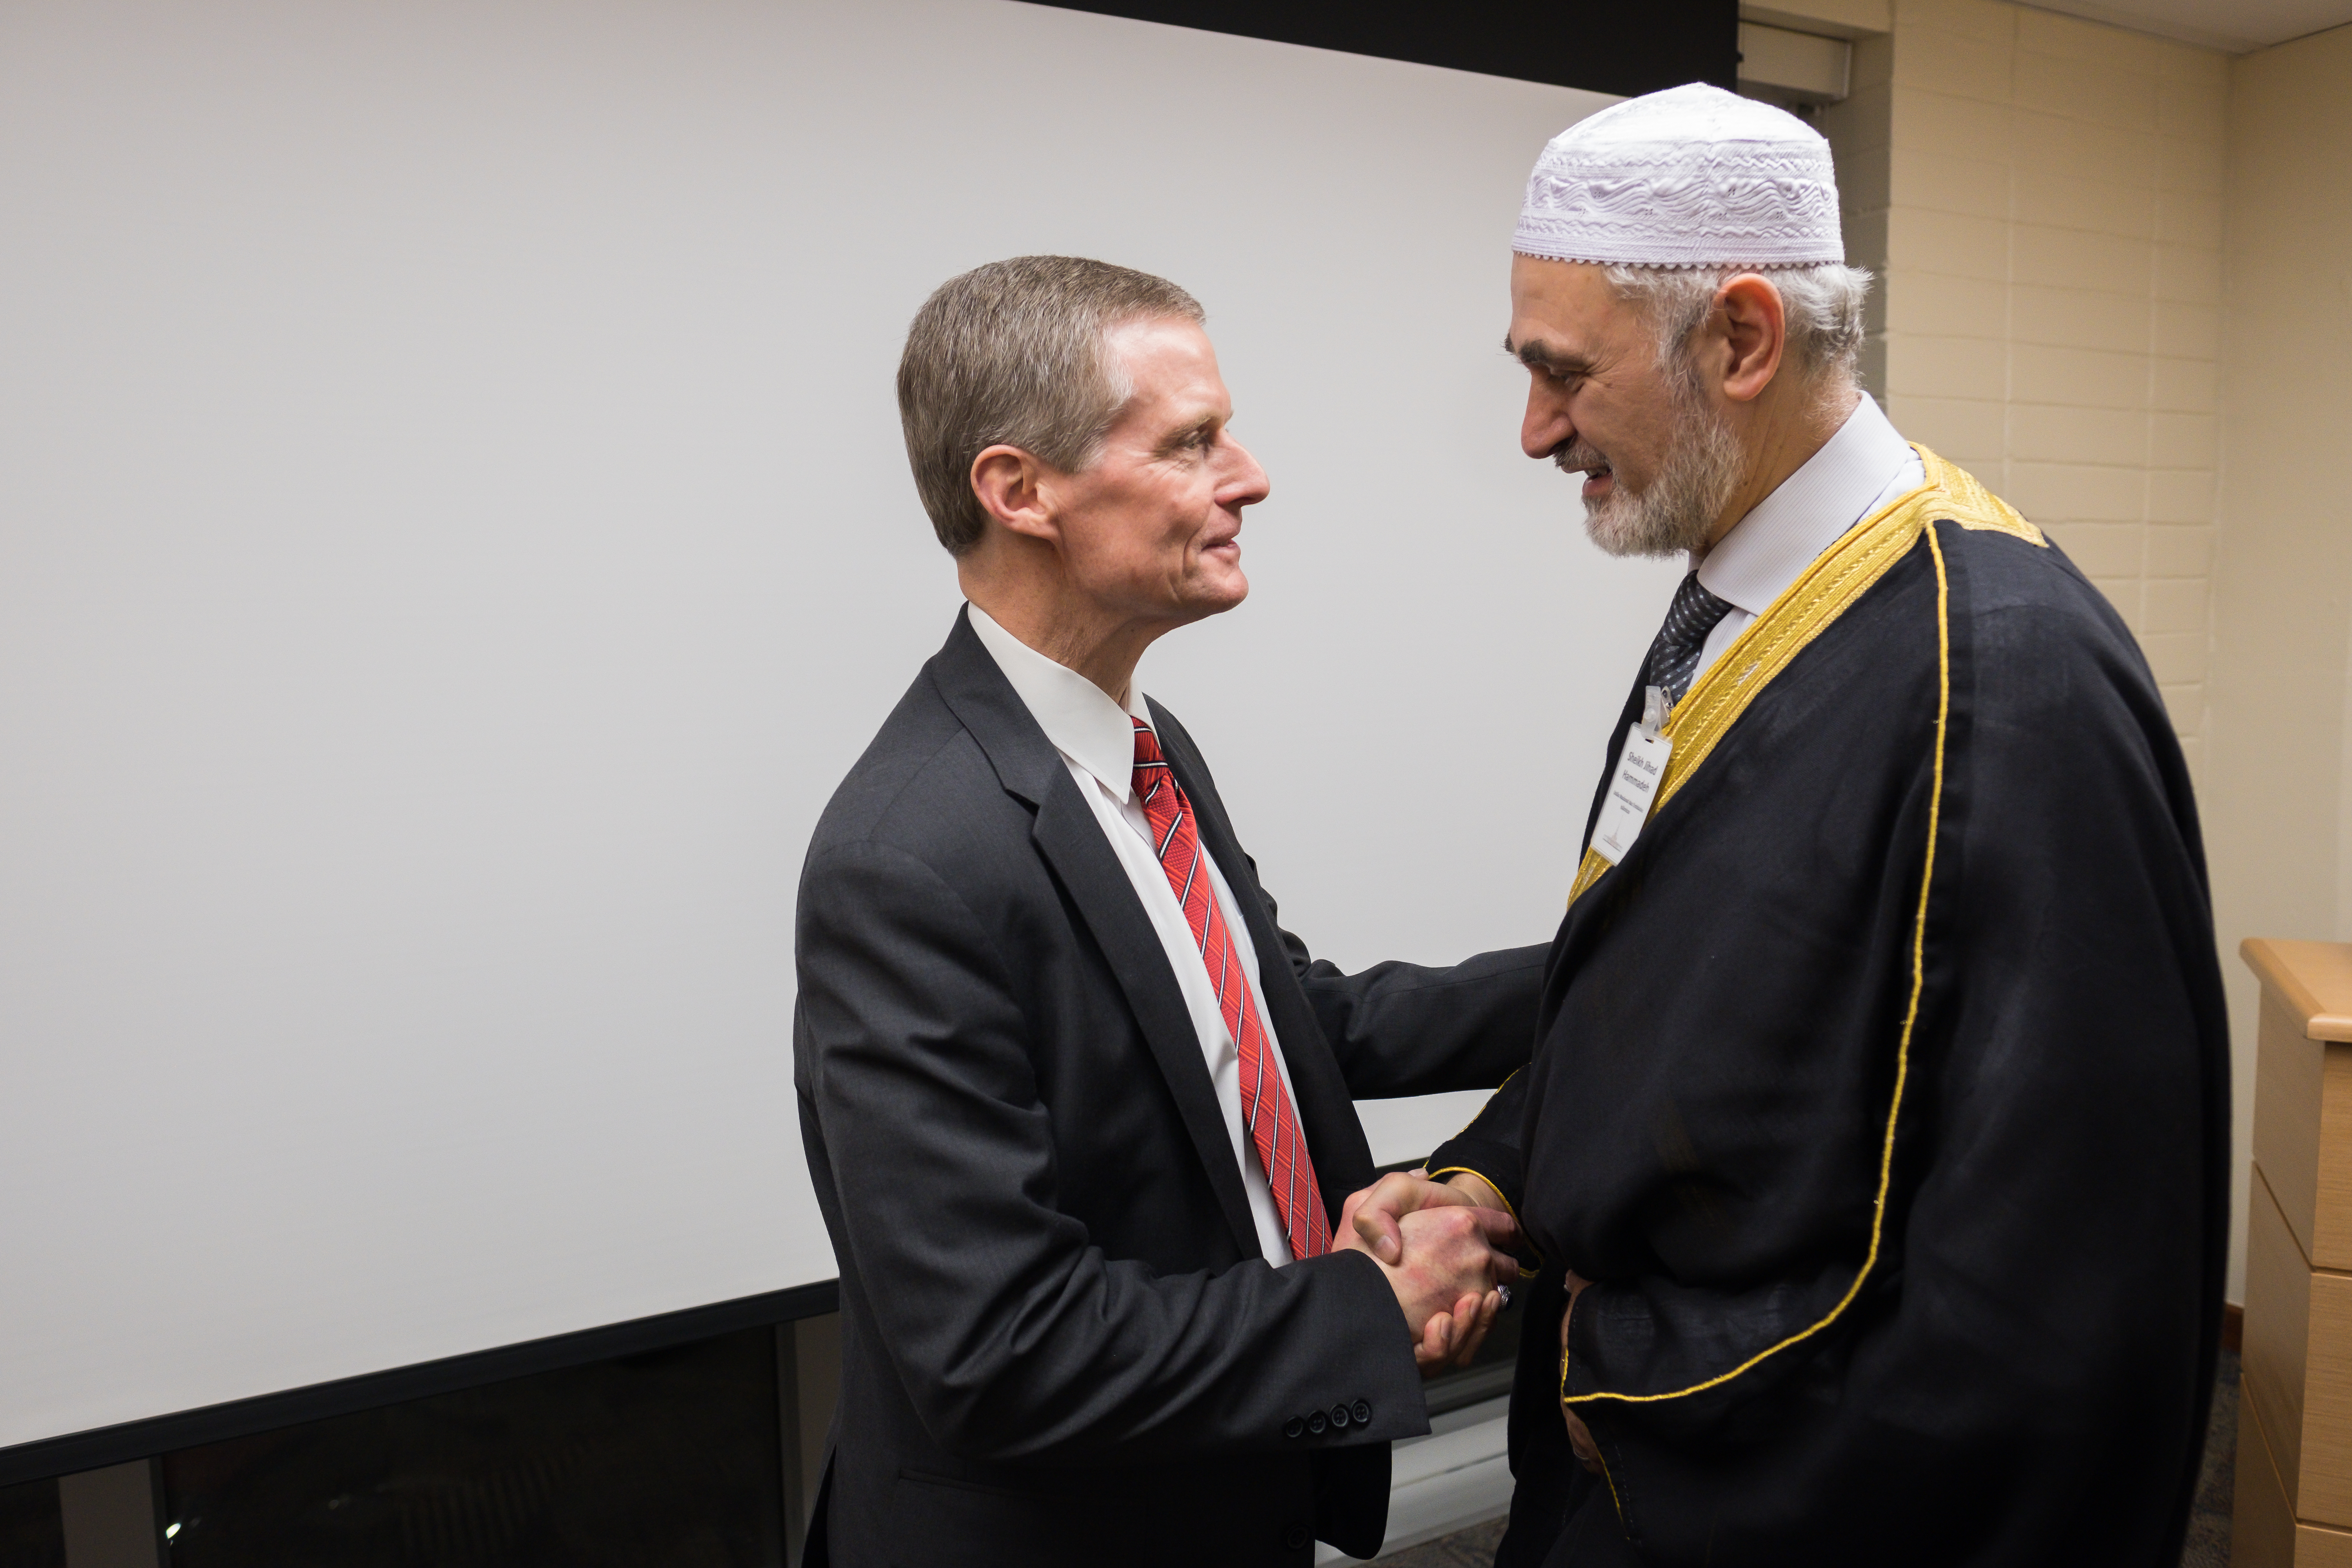 Elder David A. Bednar of the Quorum of the Twelve Apostles greets member of another faith during a LDS Church-sponsored event in Sao Paulo promoting religious freedom.